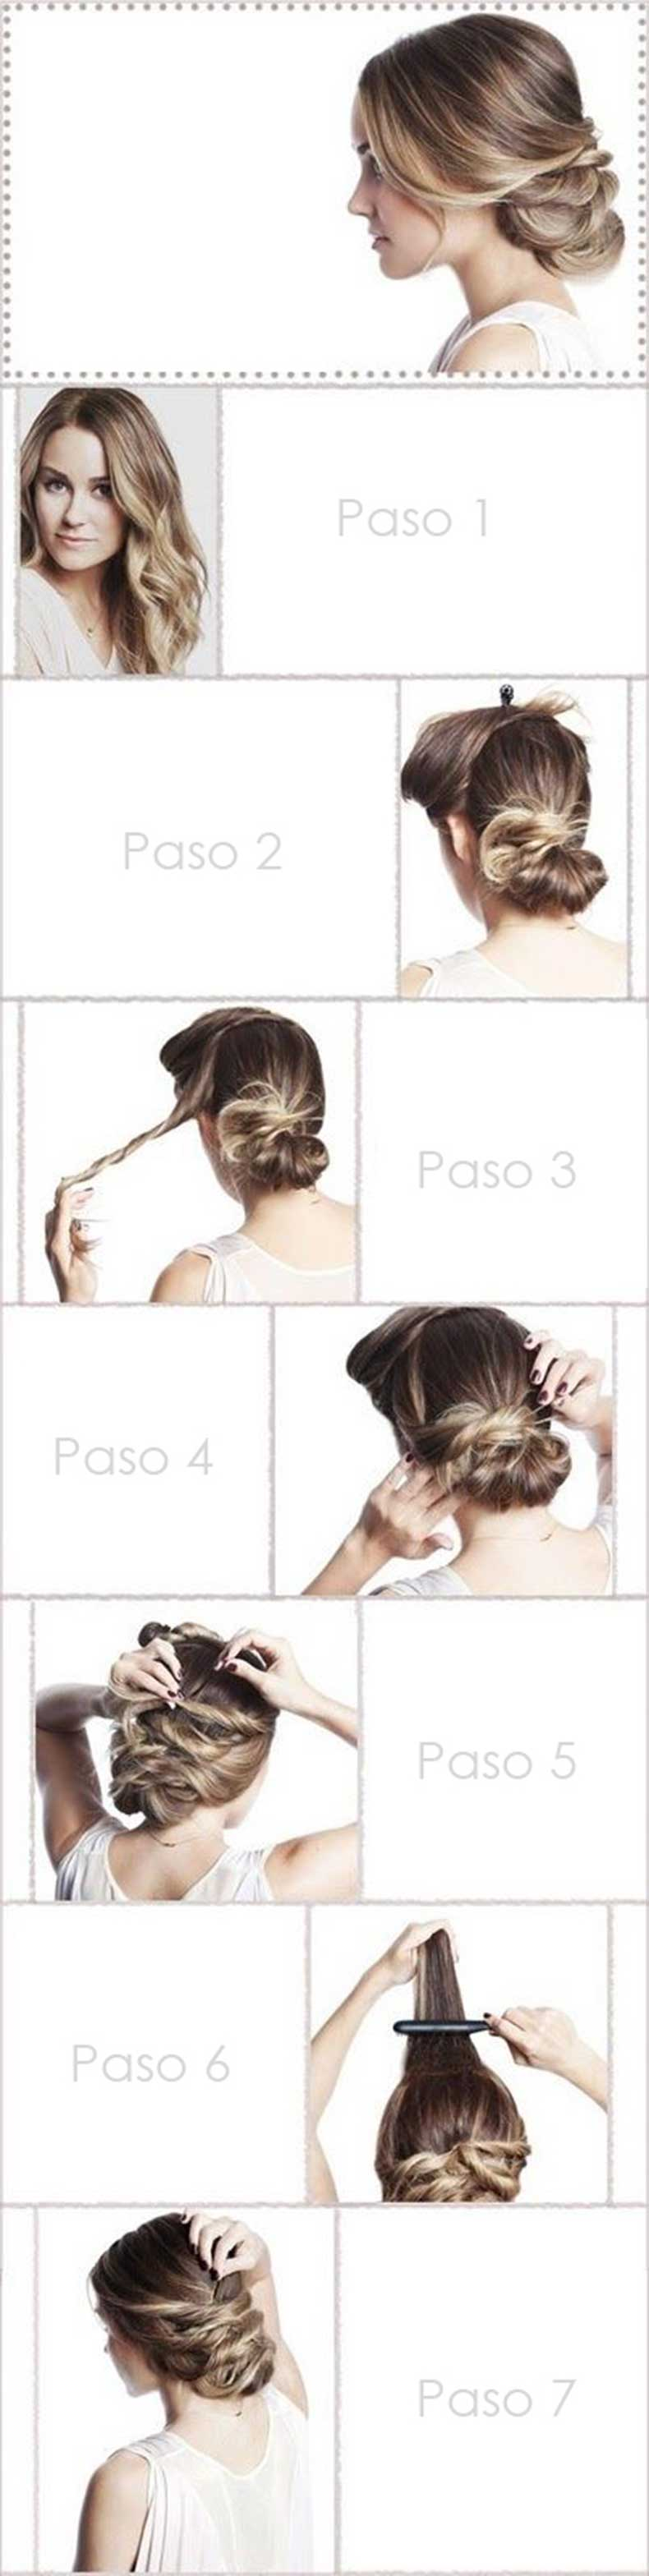 Boho-Twisted-Updo-Hairstyle-Tutorial